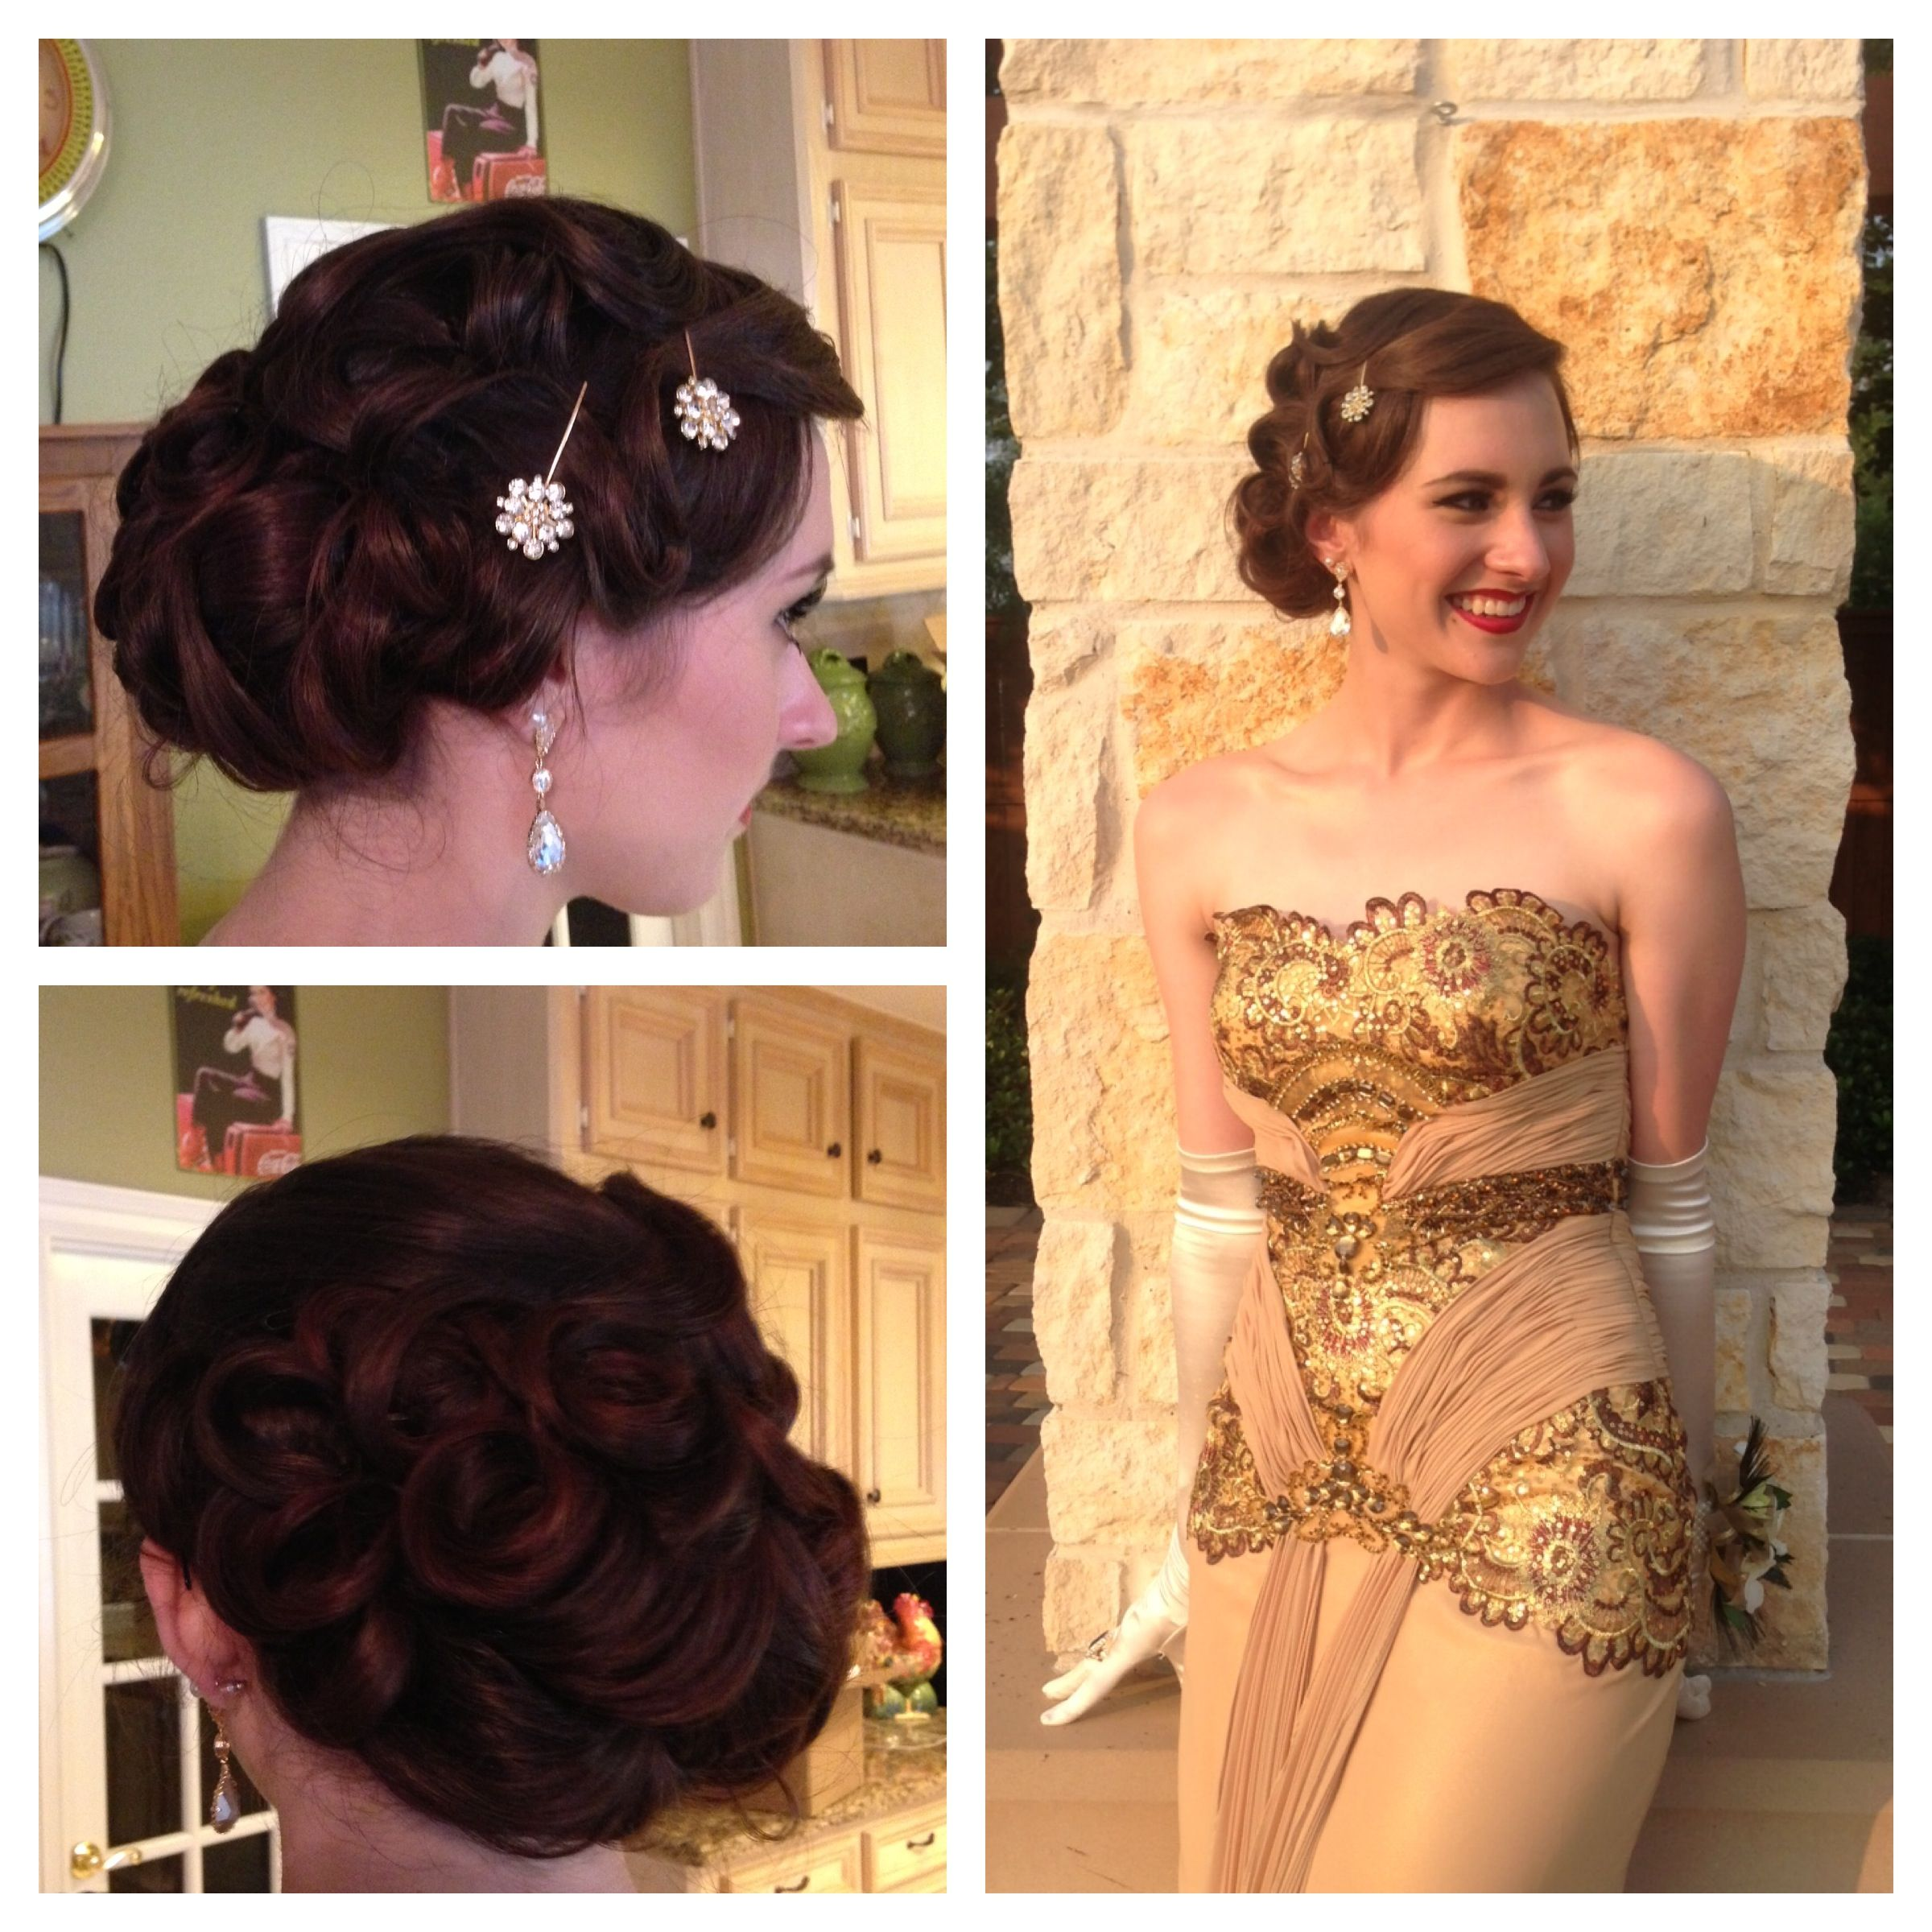 Pin by natalie on prom old hollywood pinterest - Old Hollywood Great Gatsby Updo For Prom